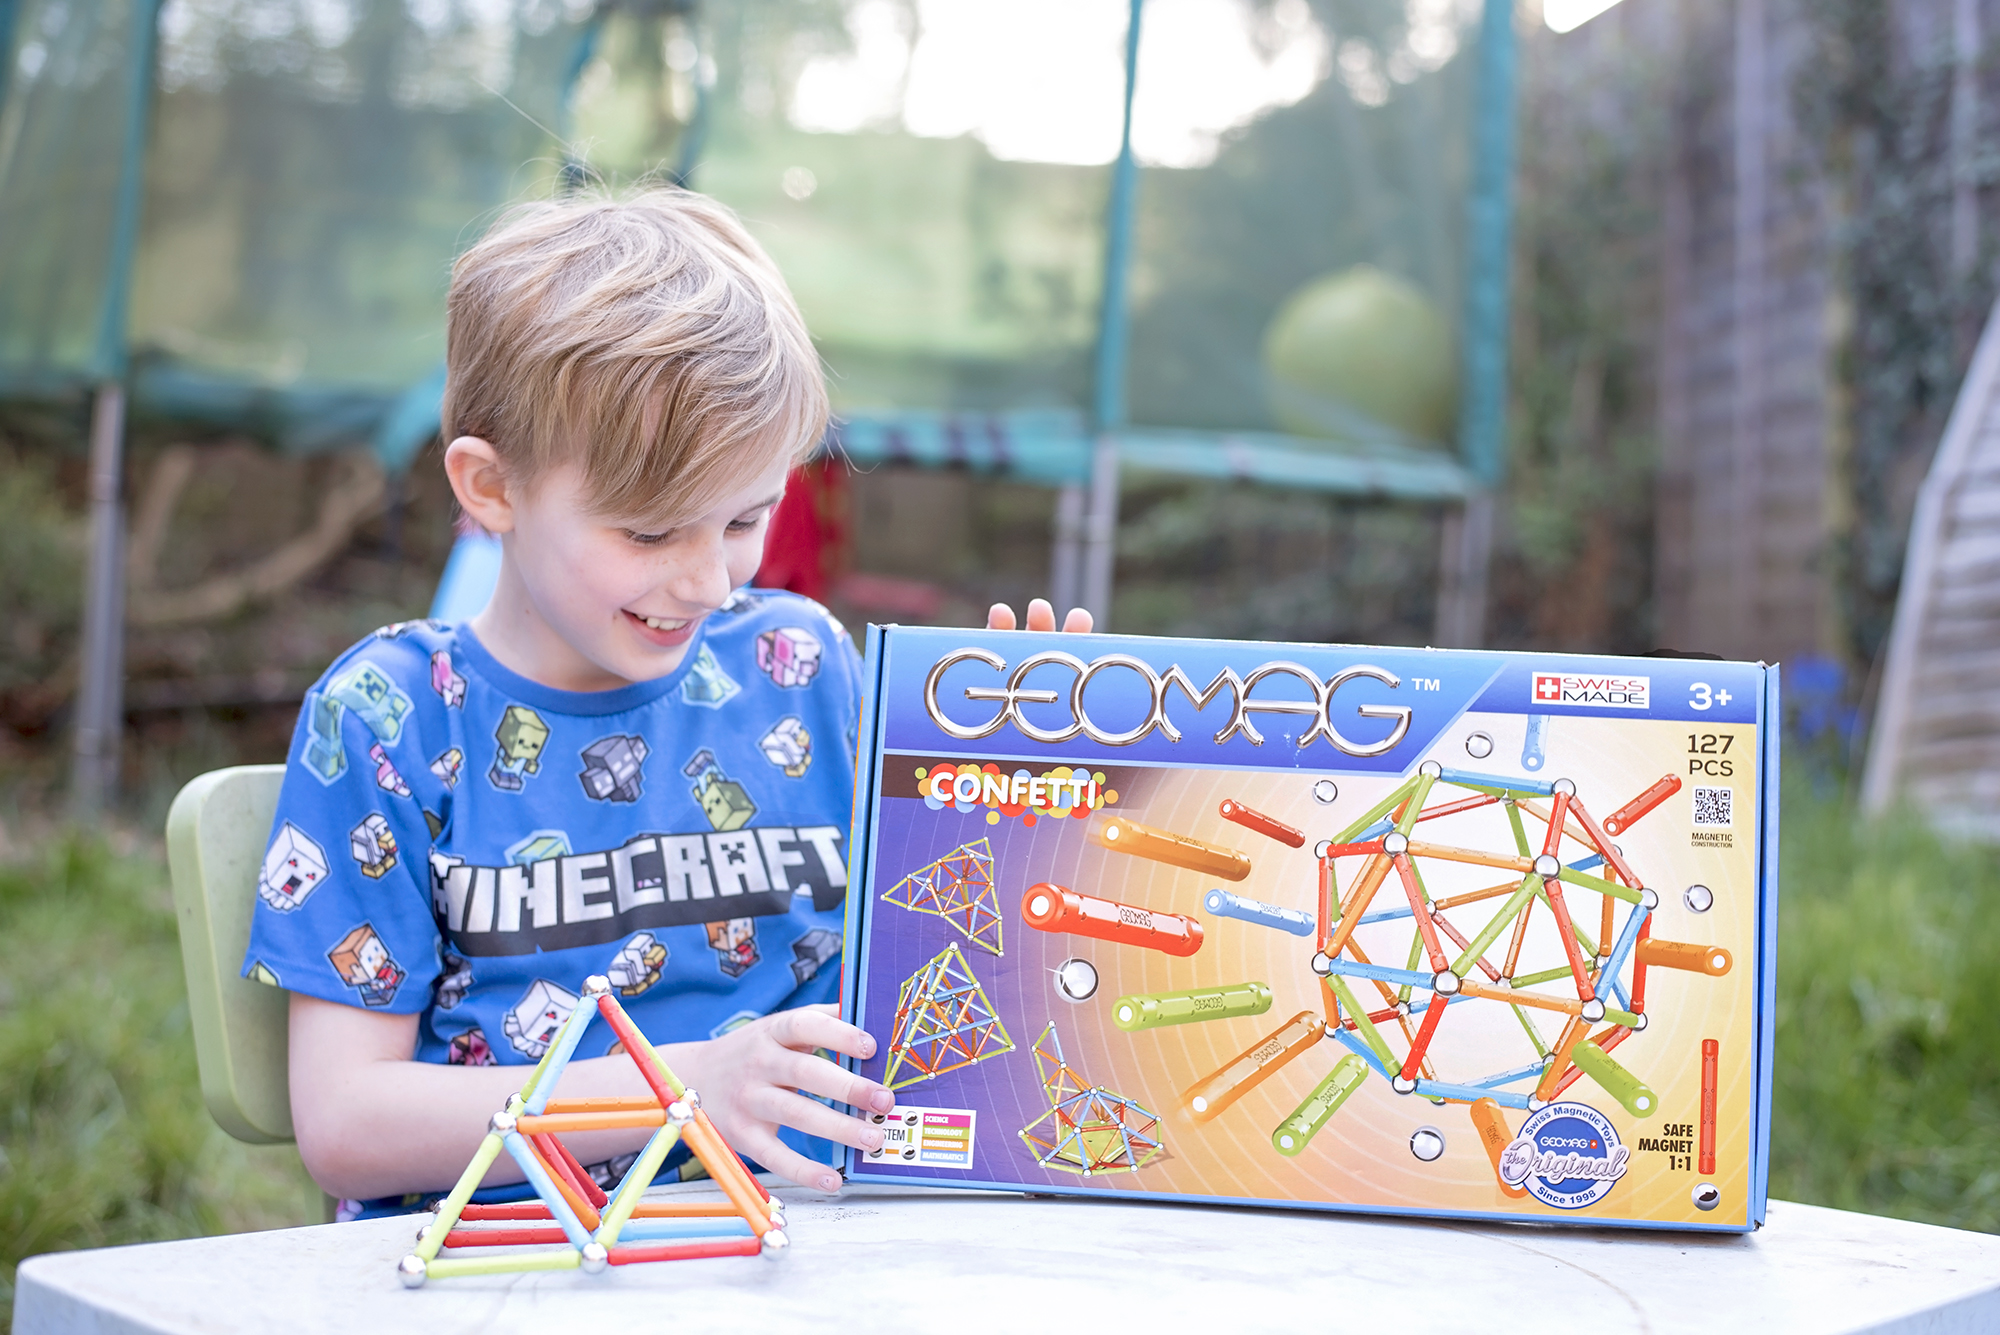 GEOMAG CONFETTI GIVEAWAY